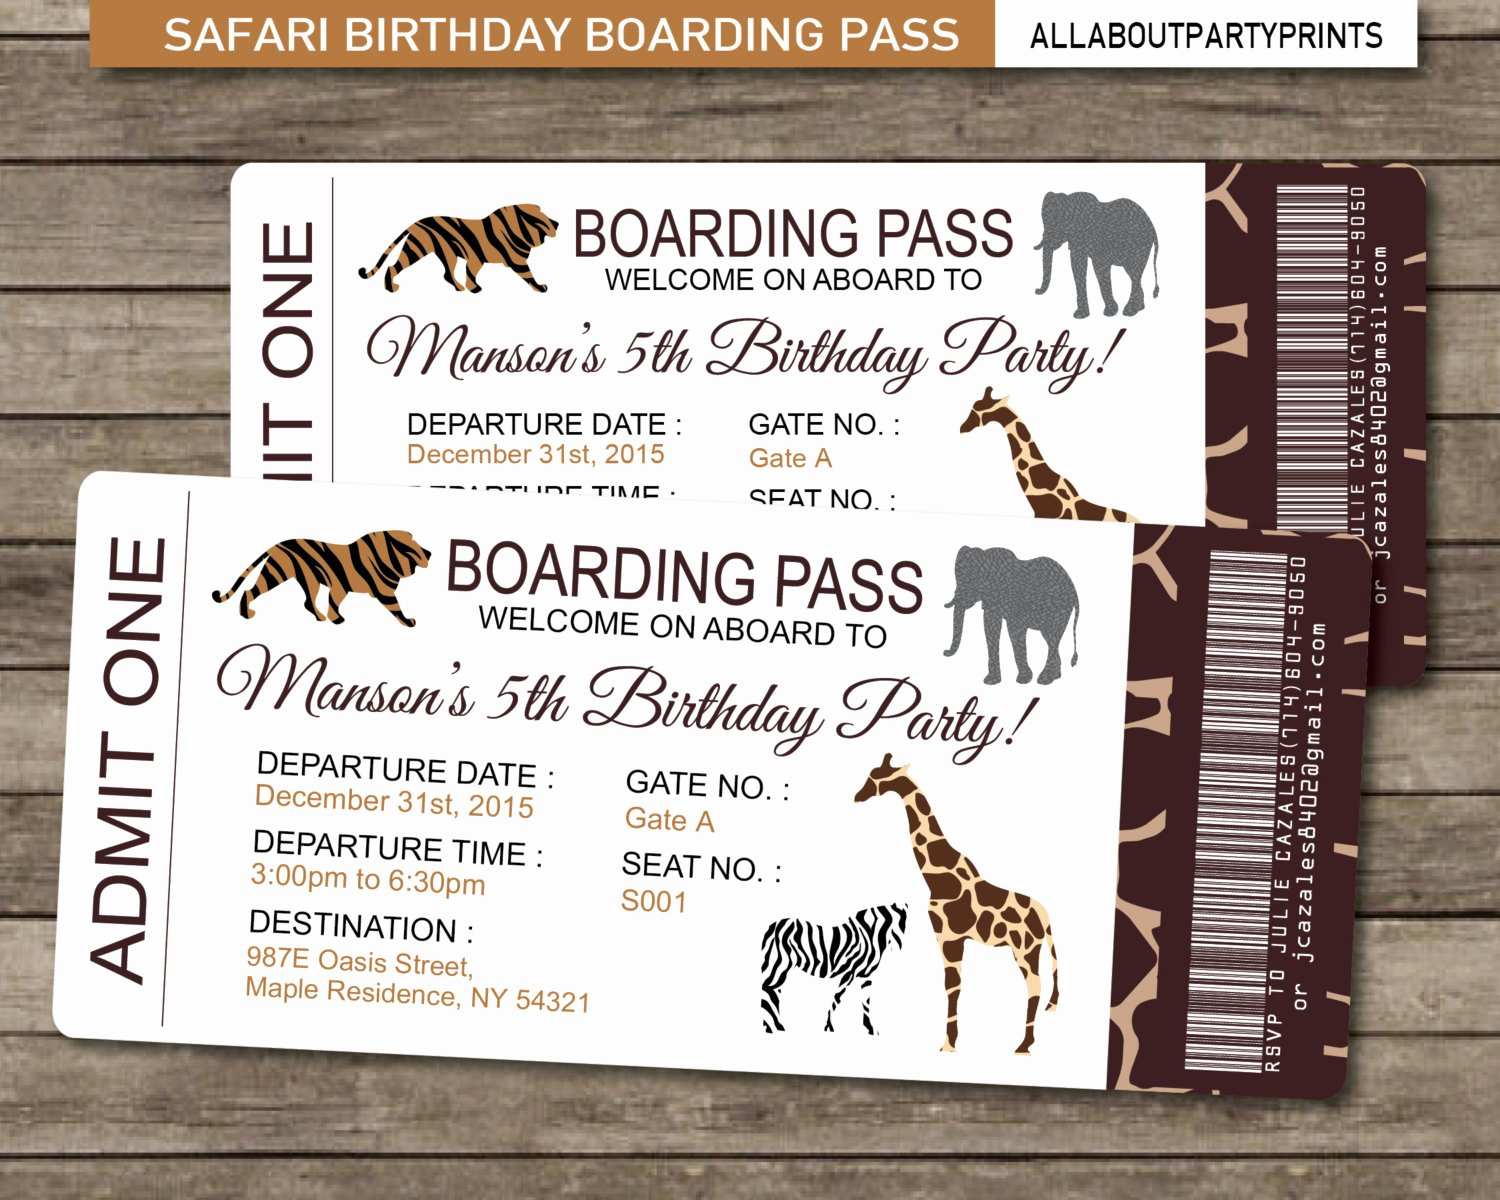 Boarding Pass Birthday Invitations Unique Safari Birthday Boarding Pass Invitation Invitation Printable